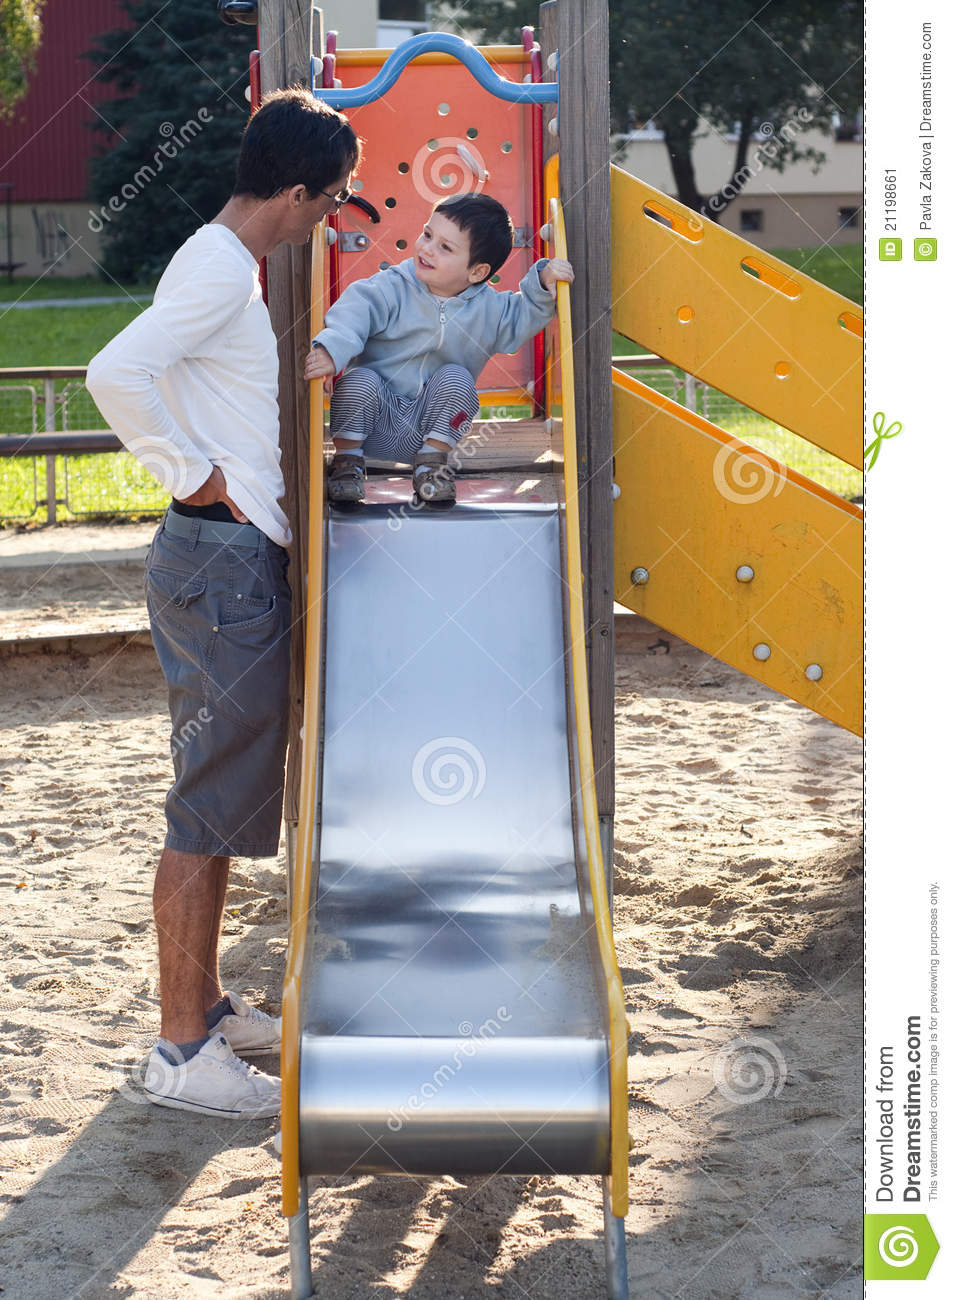 Child and father at playground